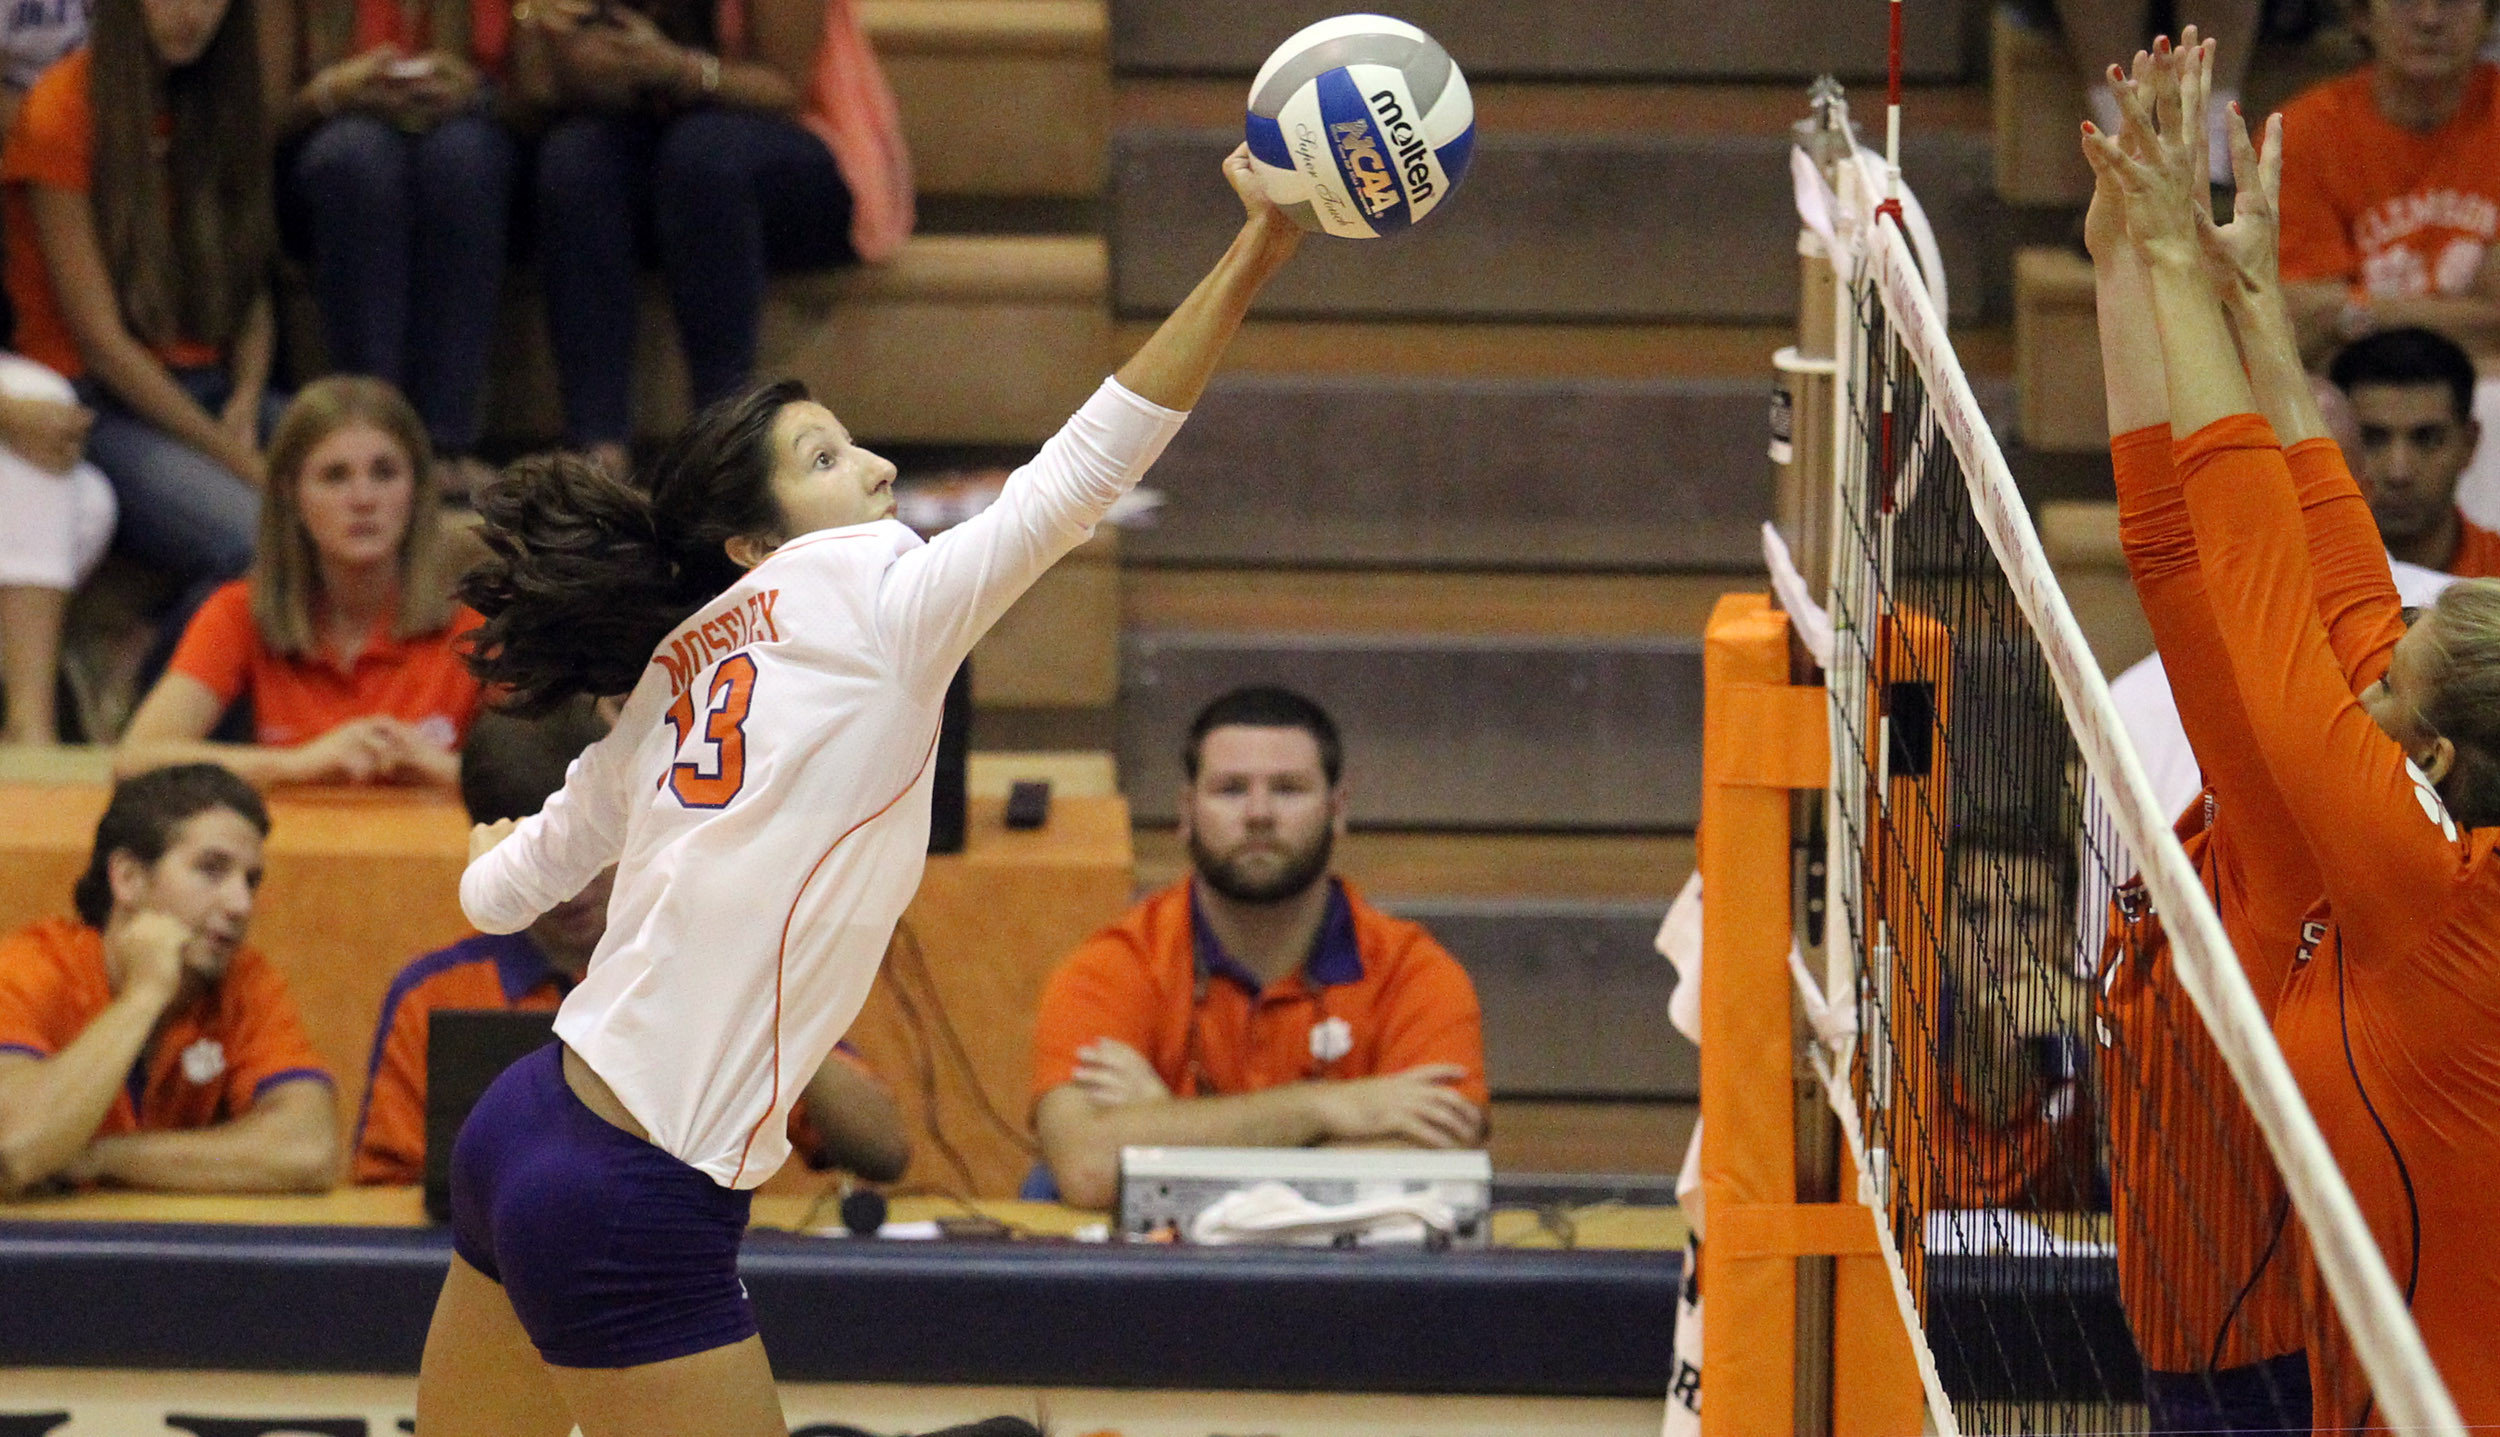 Clemson Falls to Xavier, 3-0, to Close Opening Weekend